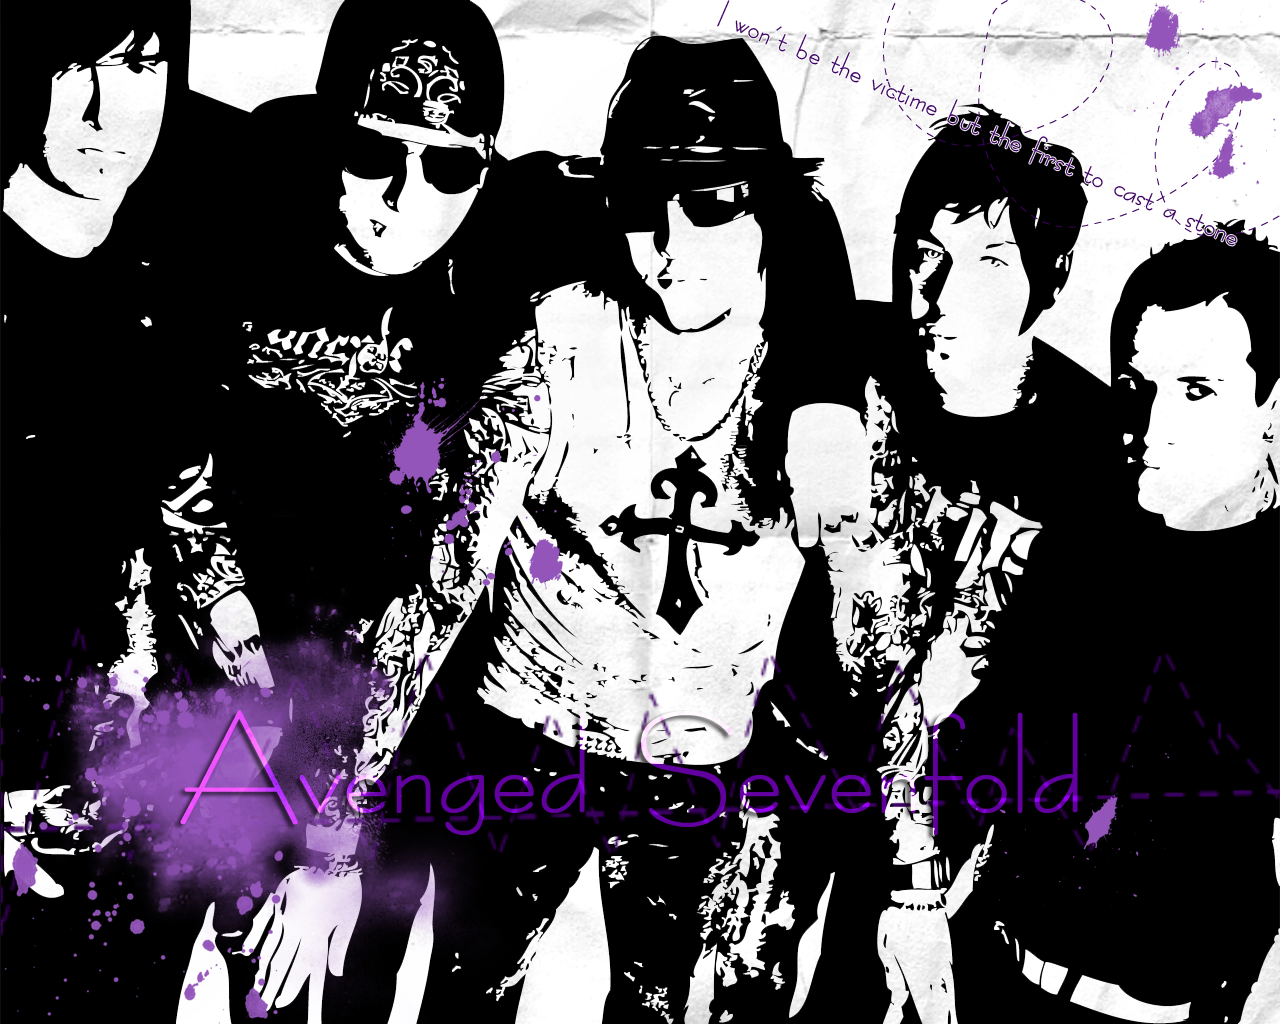 Download Wallpaper Avenged Sevenfold 1280x1024